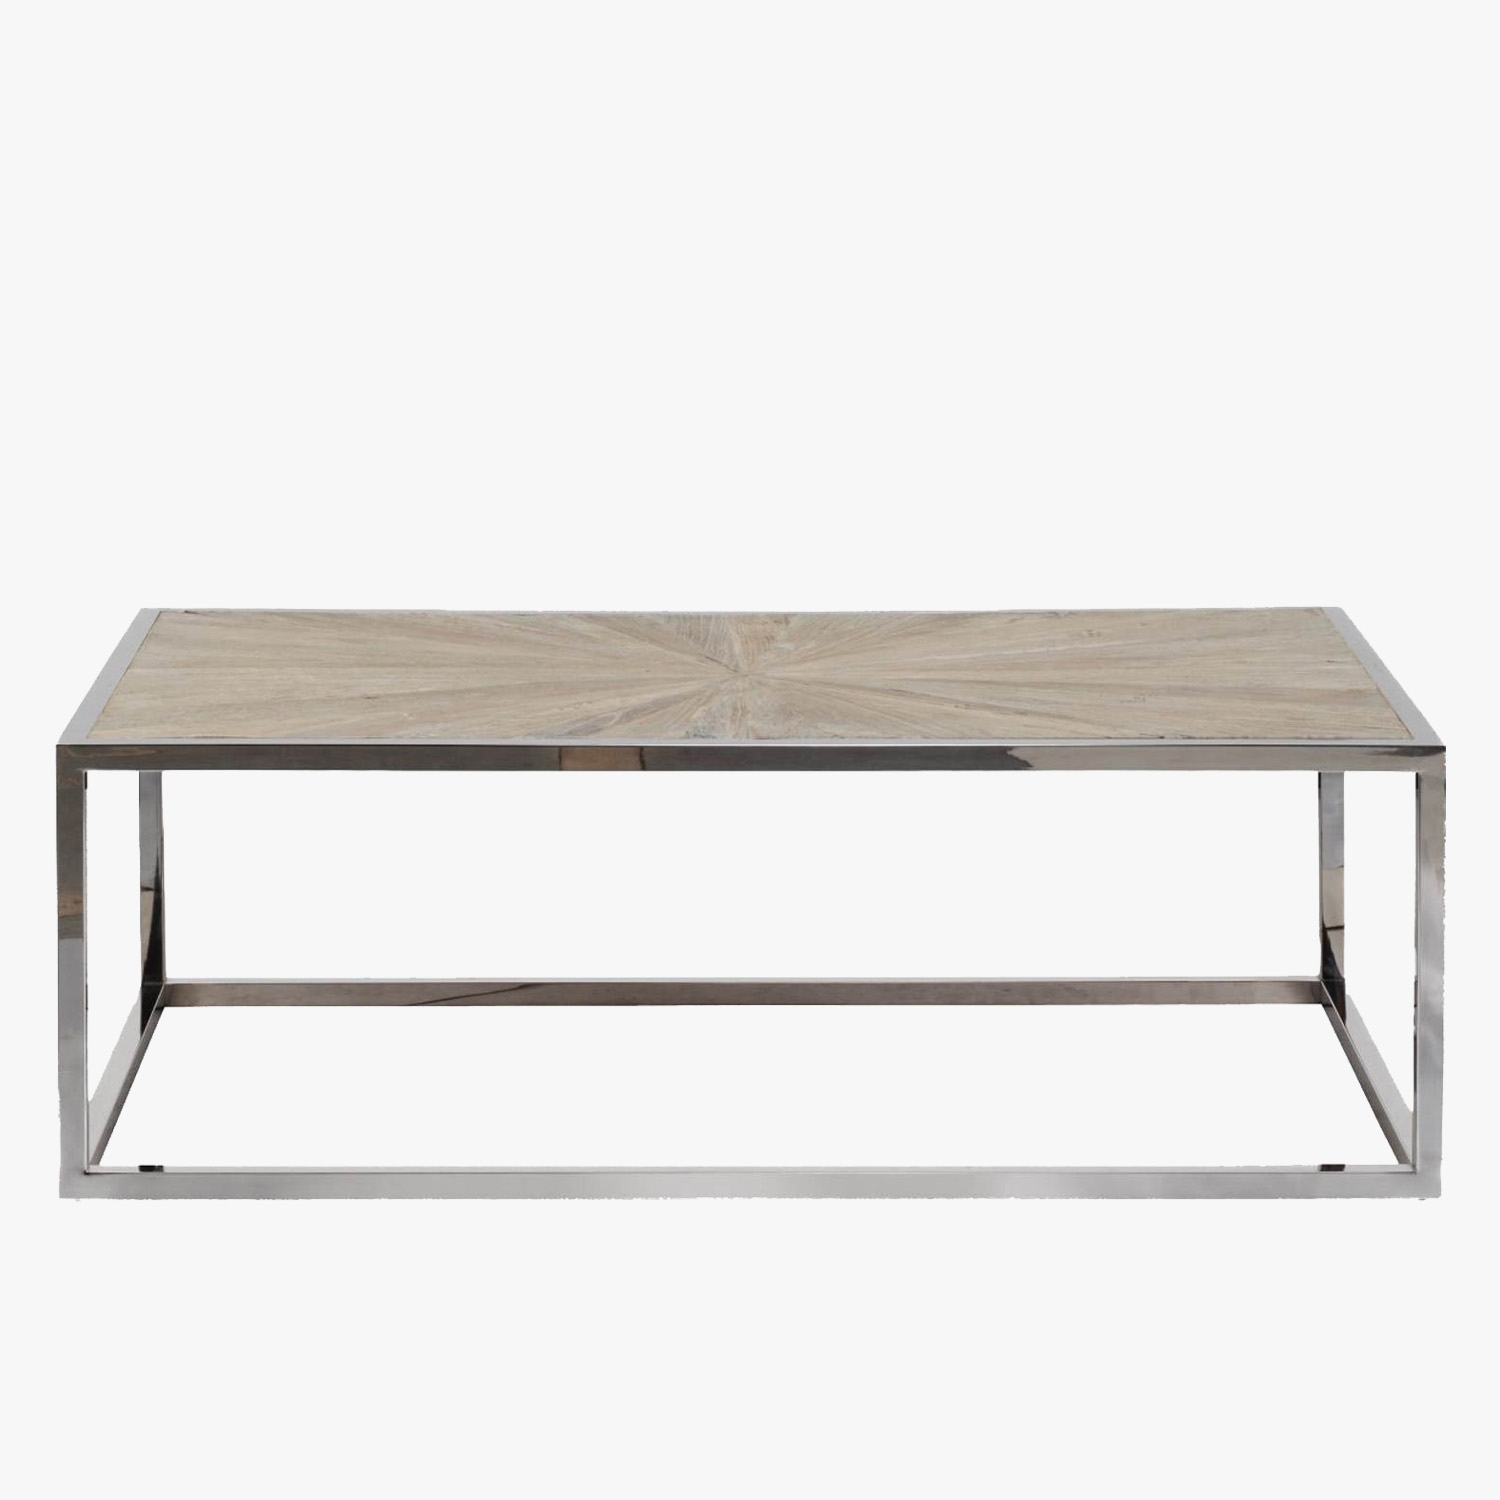 Parquet Top Chrome Coffee Table   Shop Coffee Tables   Dear Keaton Regarding Parquet Coffee Tables (Photo 8 of 30)